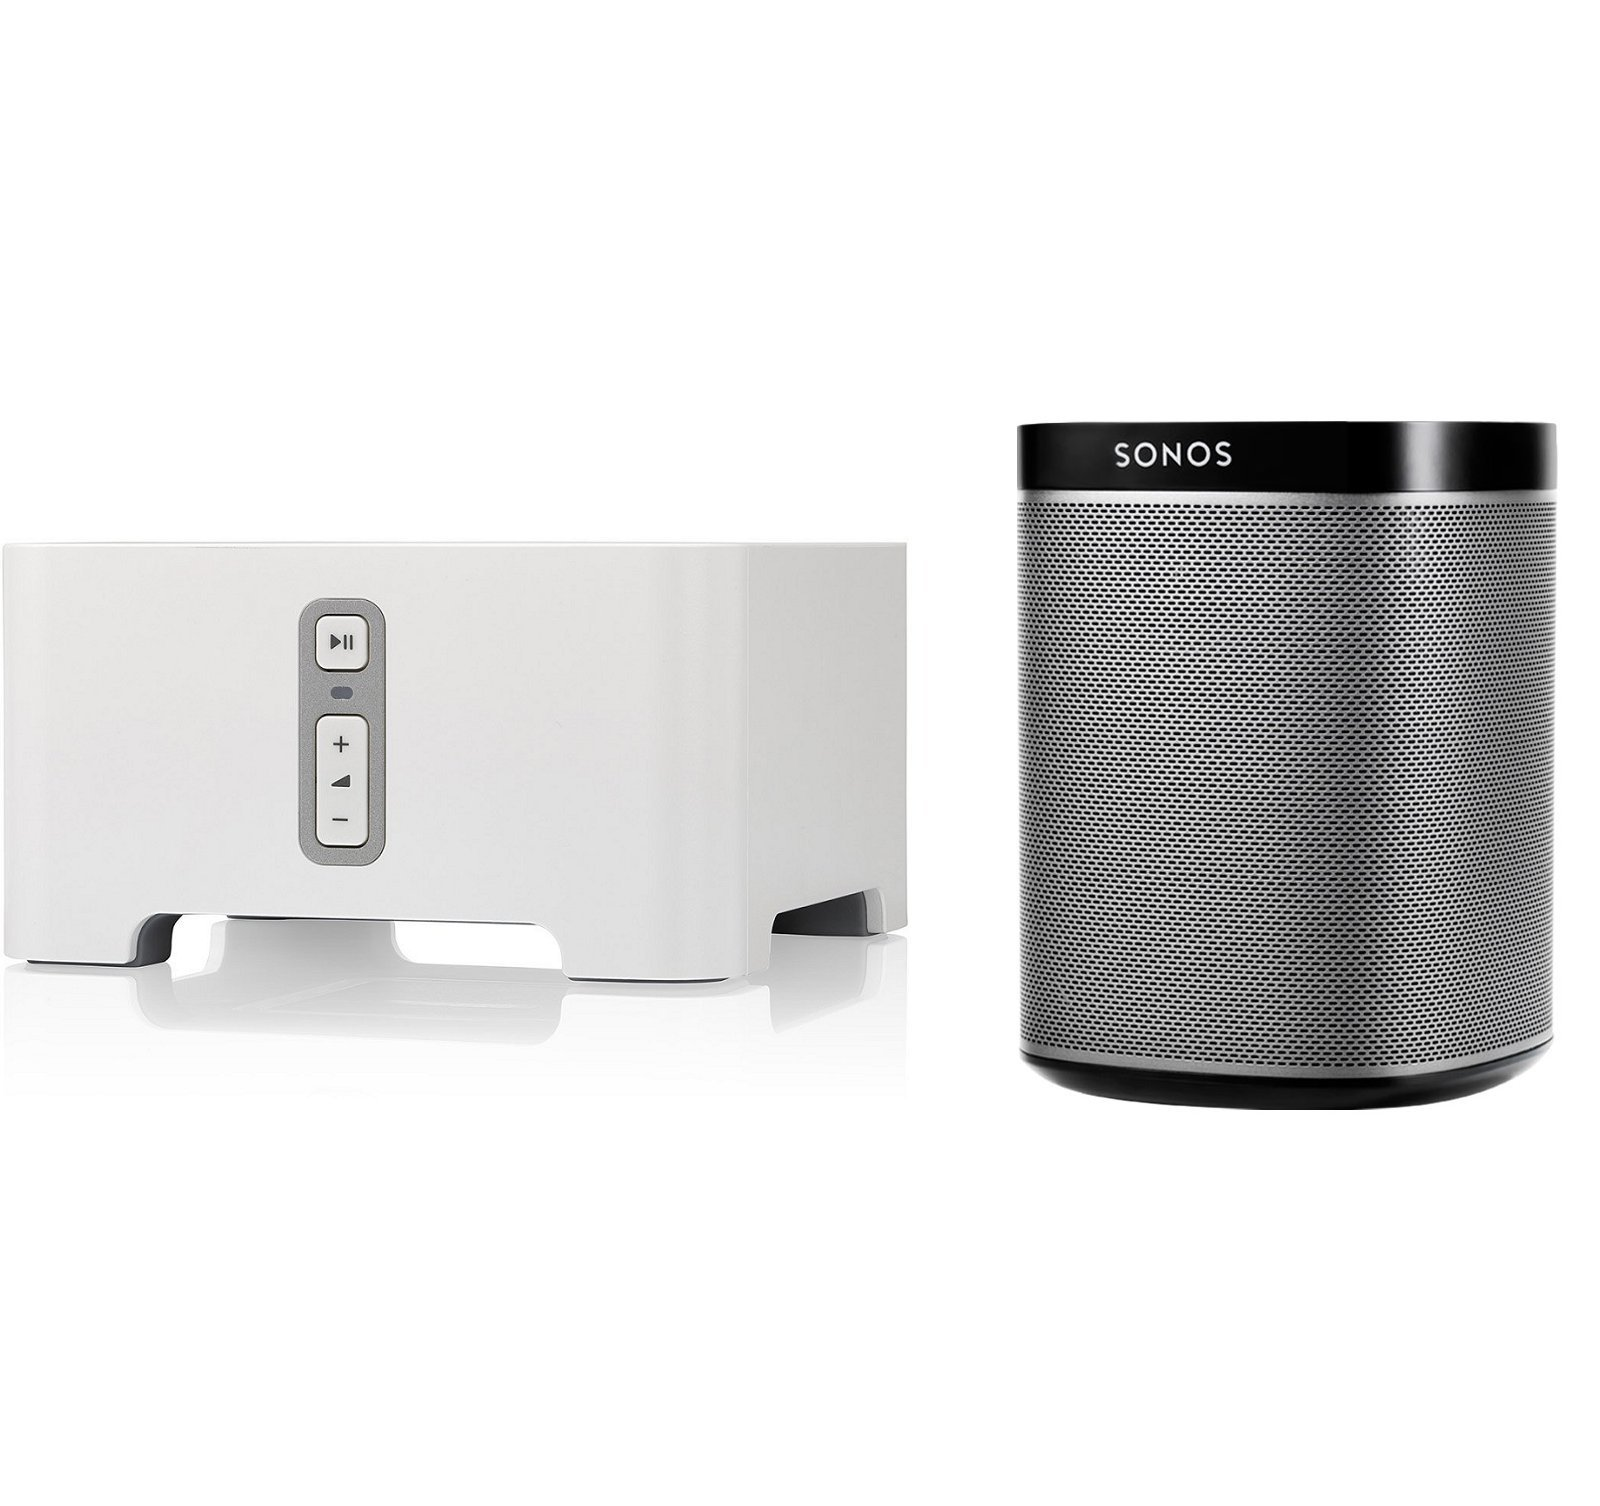 Sonos CONNECT Wireless Receiver for Streaming Music Bundle & Sonos PLAY:1 Wireless Speaker, Single - Black by Sonos